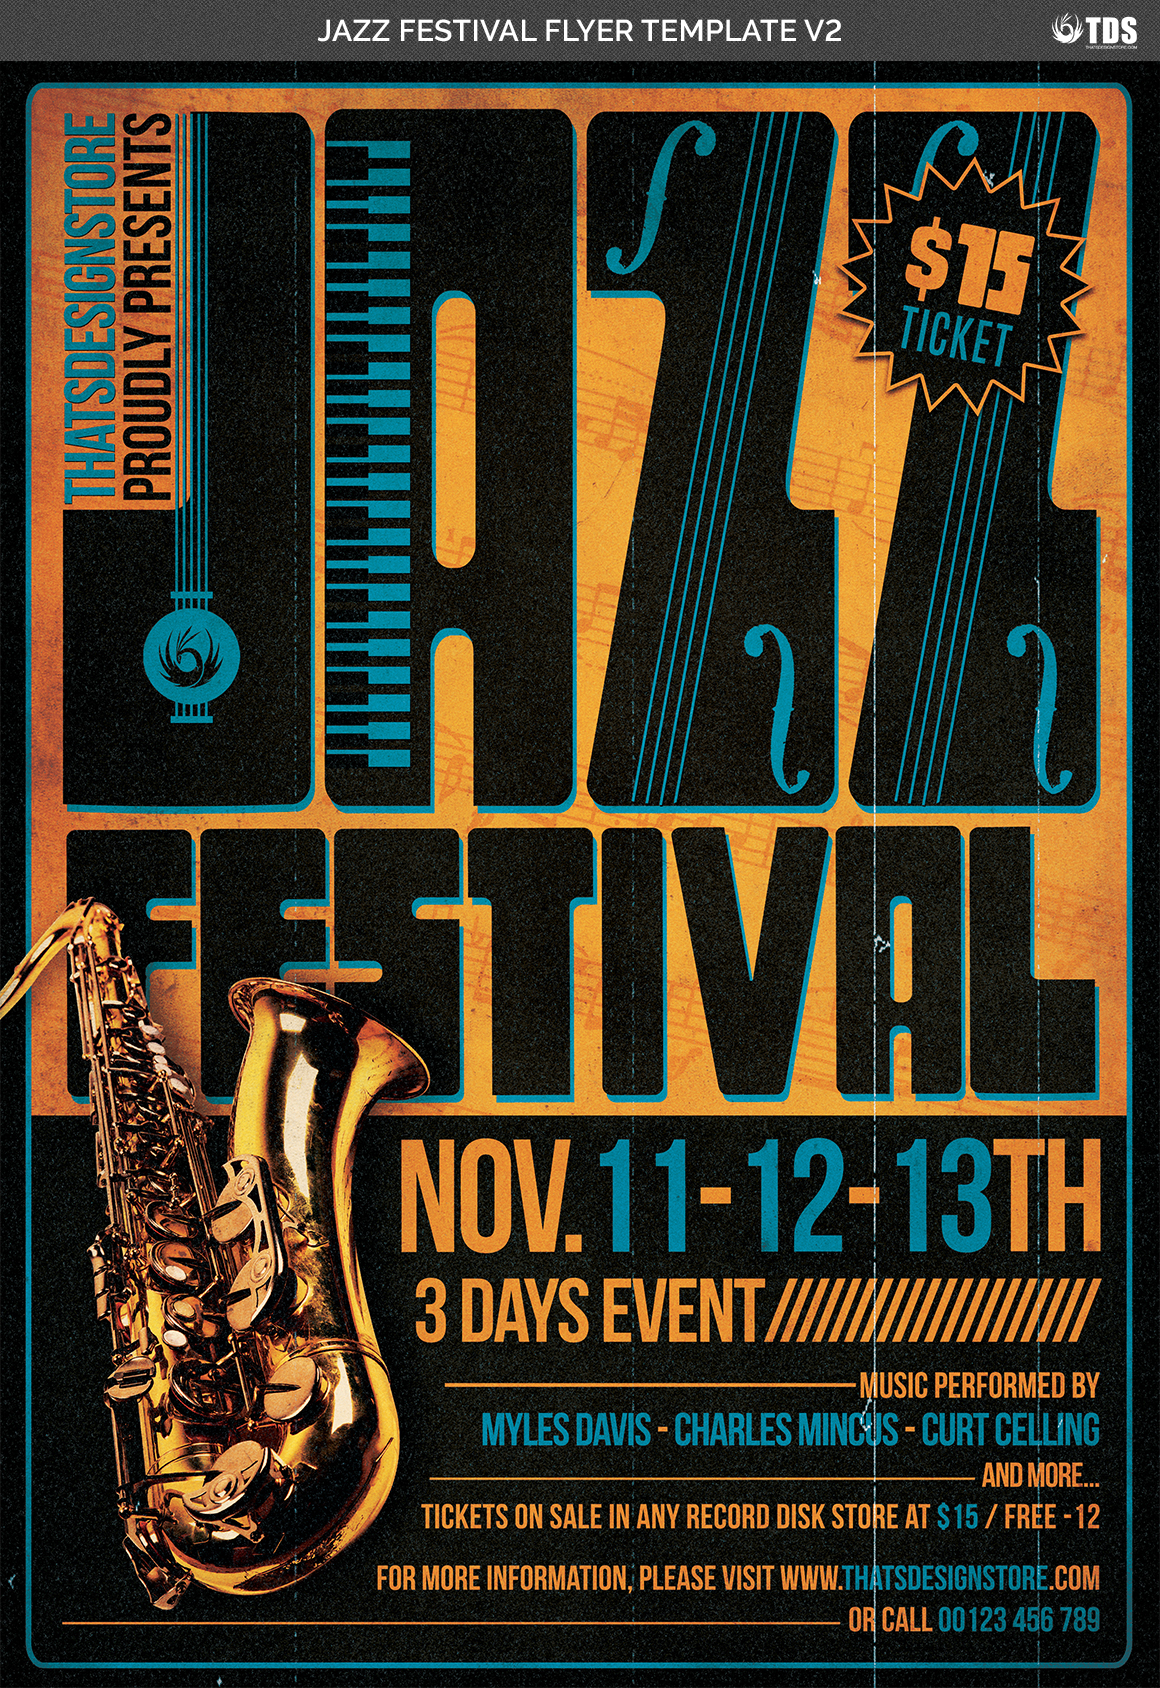 Jazz Festival Flyer Template V2 example image 4